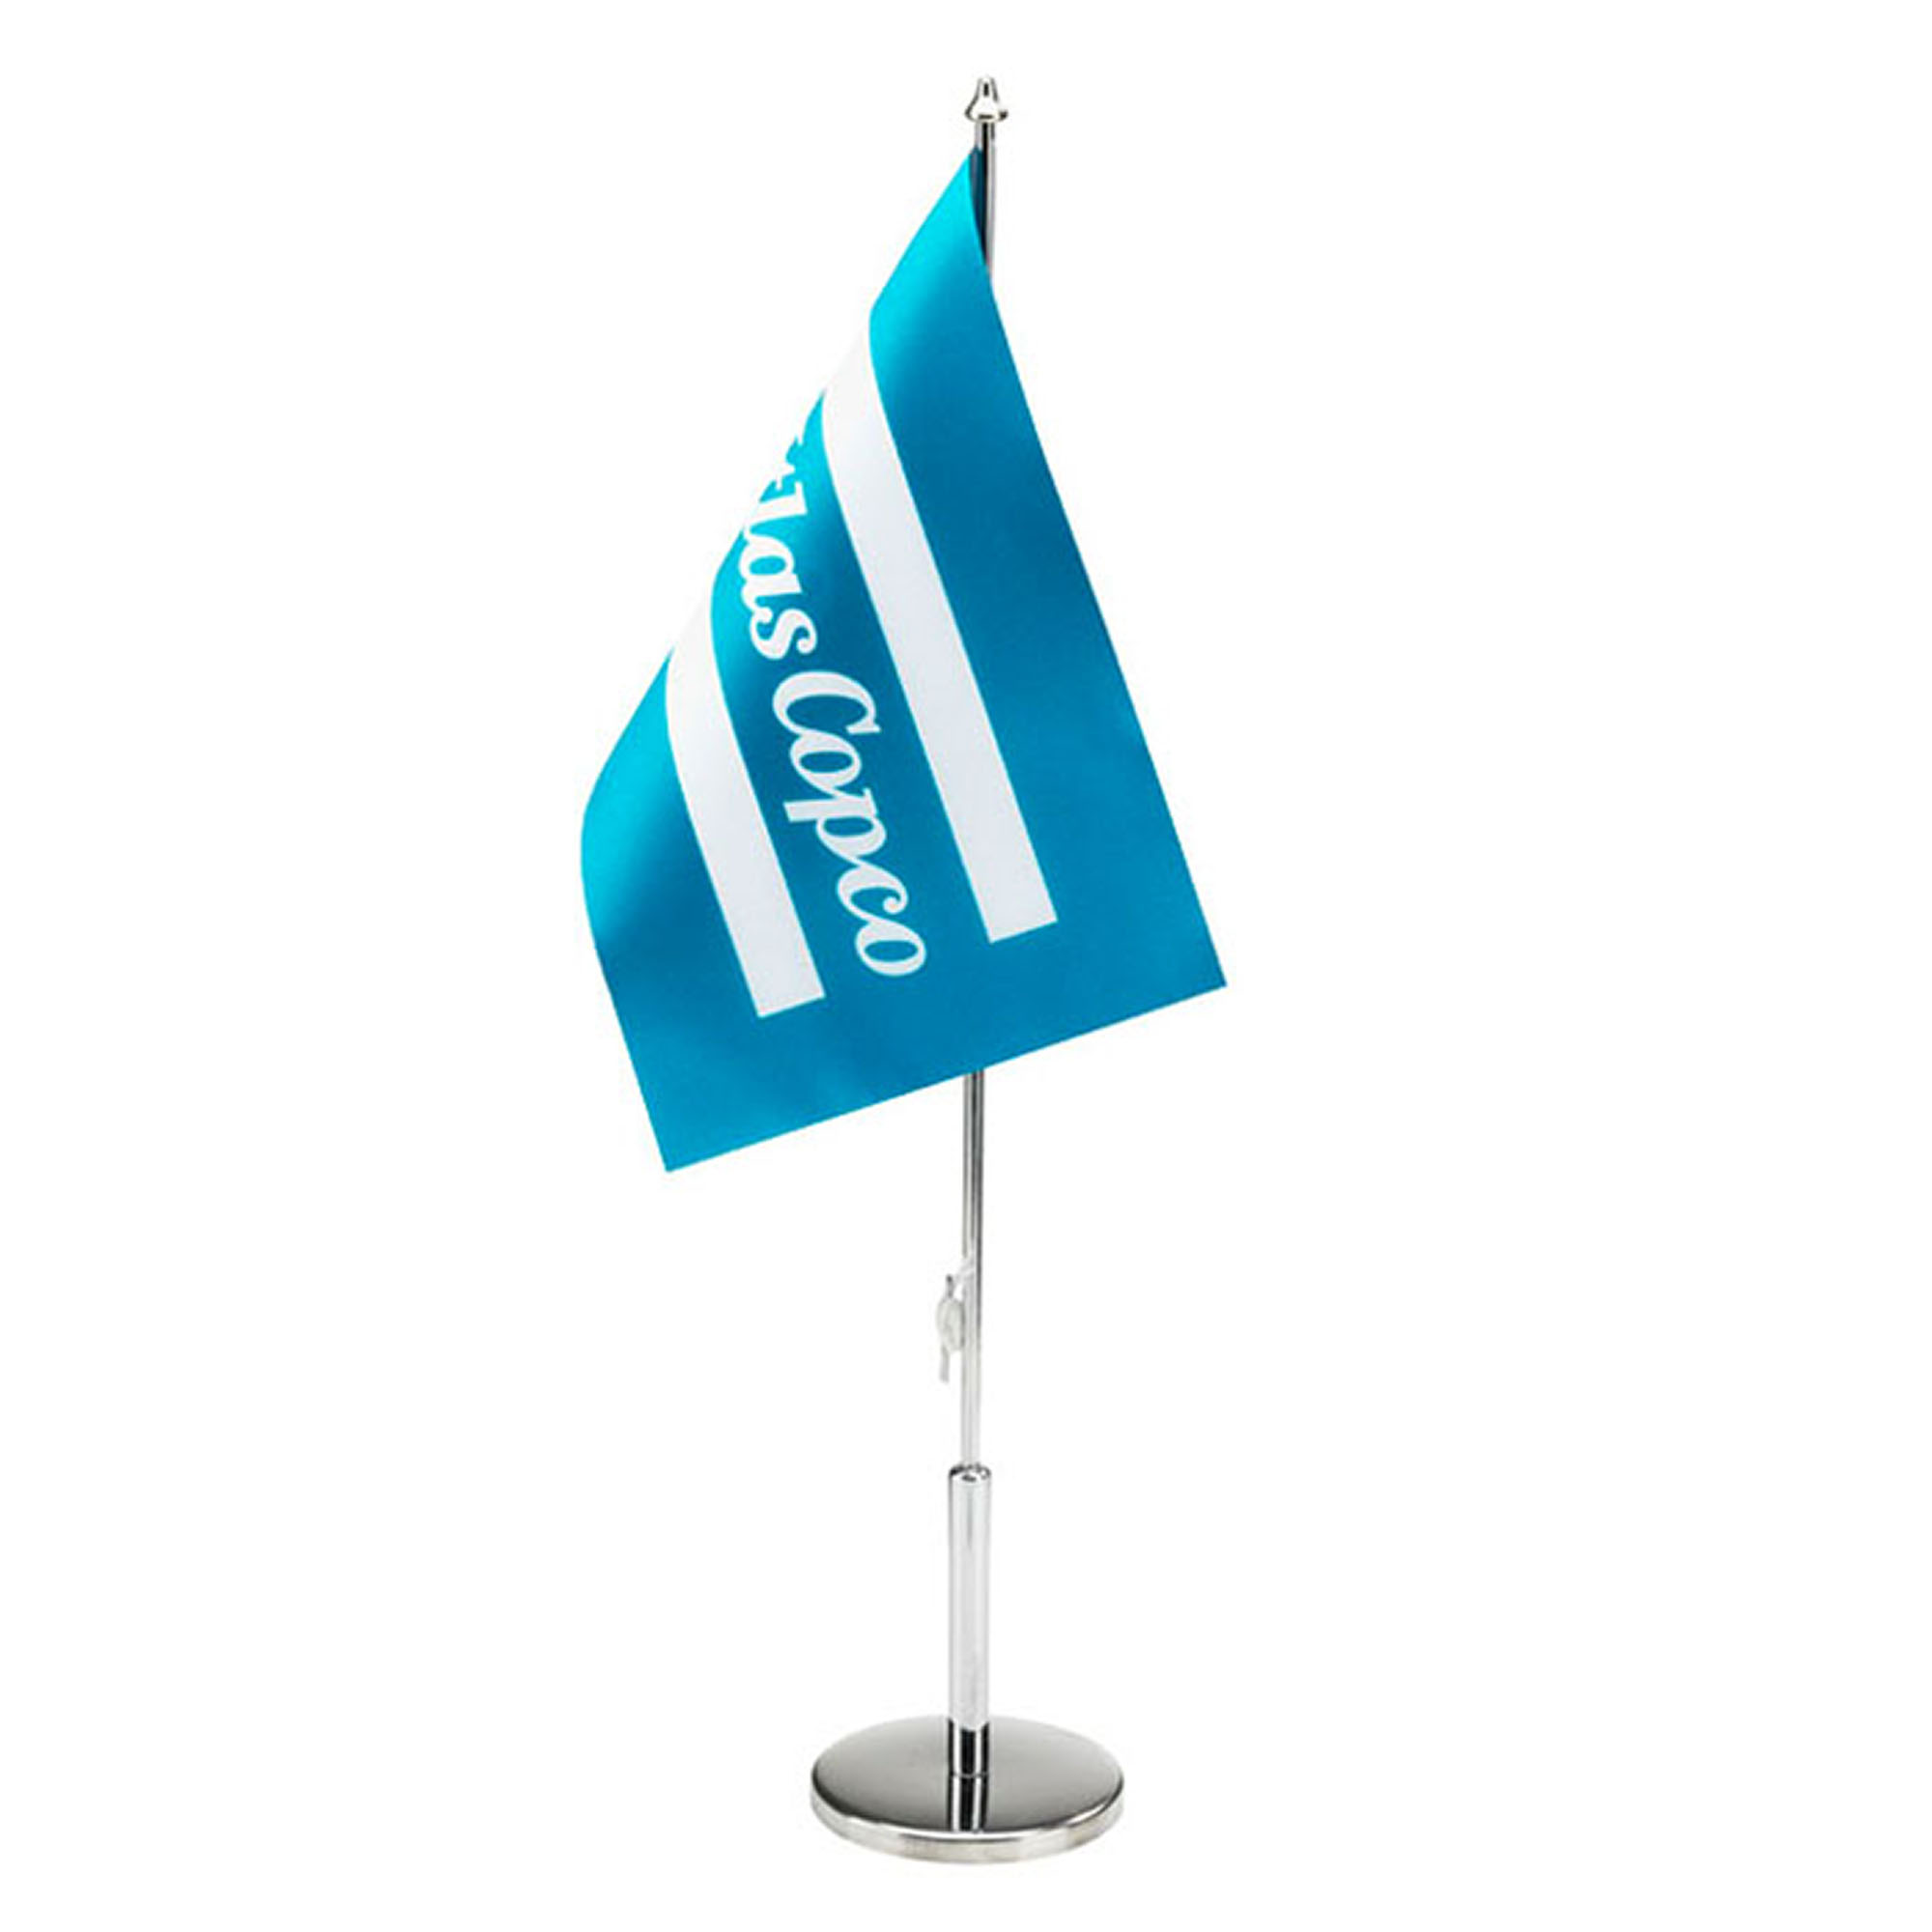 Table flag with metal pole and foot. A perfect item to have standing at the reception desk, office desk or at a conference table to show the company brand.